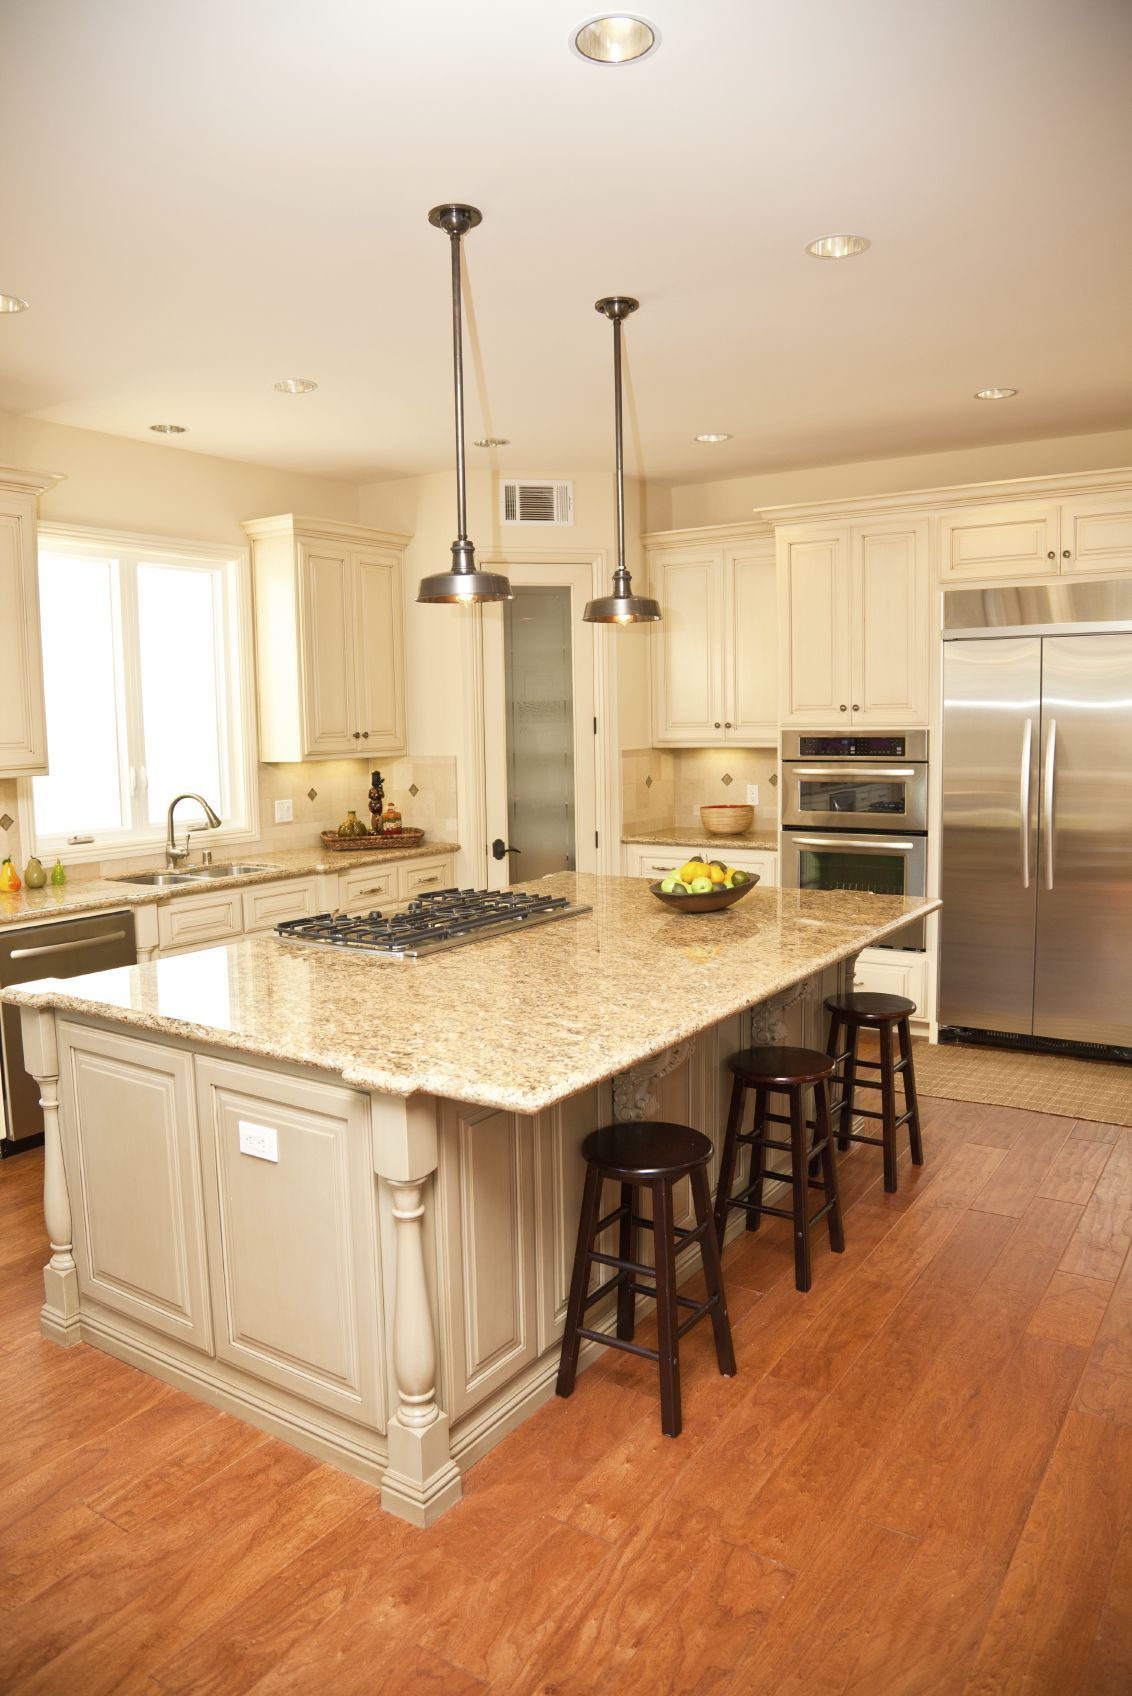 No Matter How Small Your E Is Get Inspiration From Our Kitchen Island Ideas And Tips To Add More Function With An